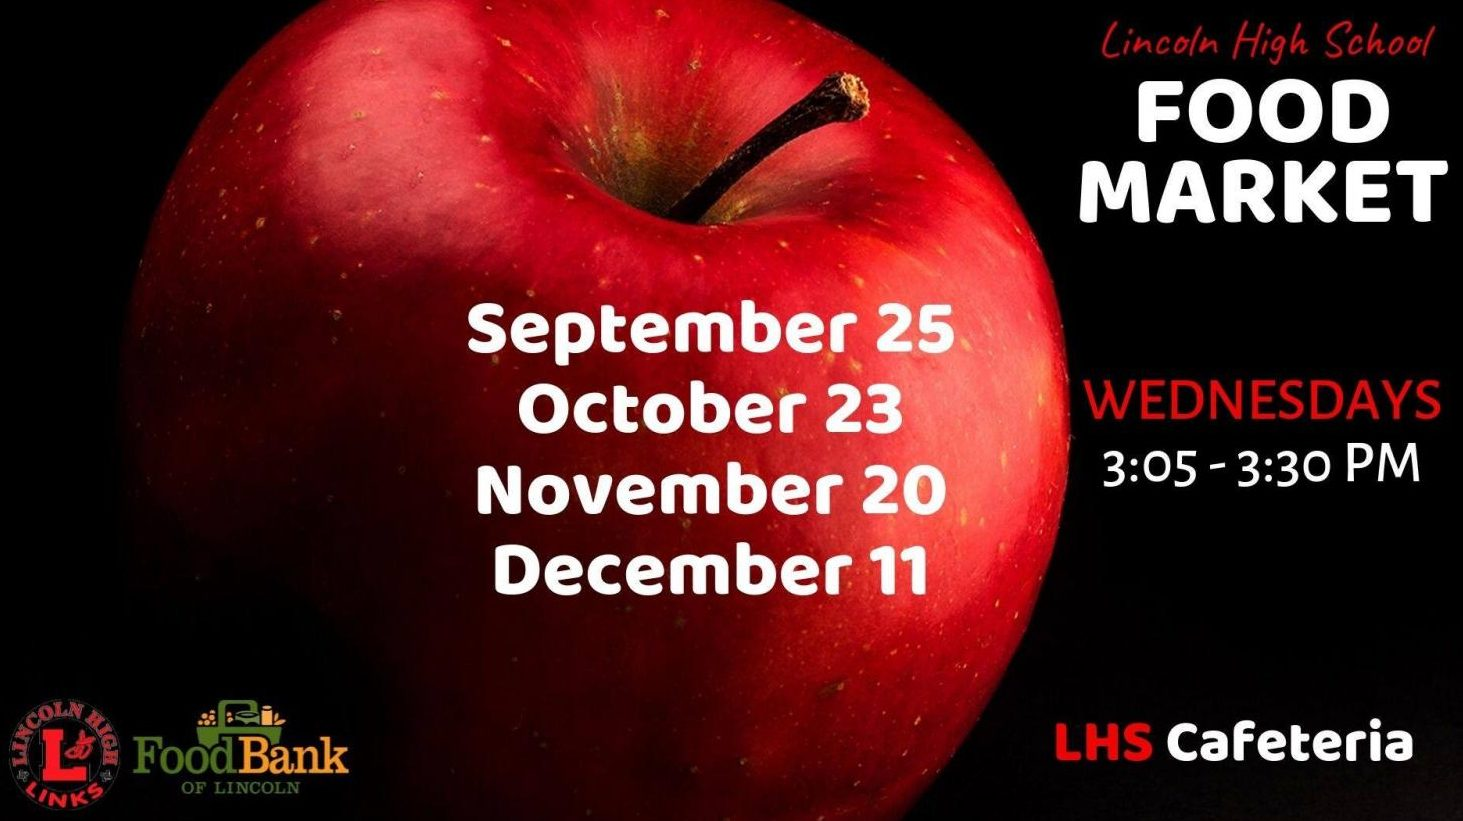 Lincoln Food Bank has released 4 dates this semester for the LHS Food Market. On these days any student, parent, or staff member can visit the market from 3:05-3:30. Photo courtesy of the LHS Food Market Facebook.